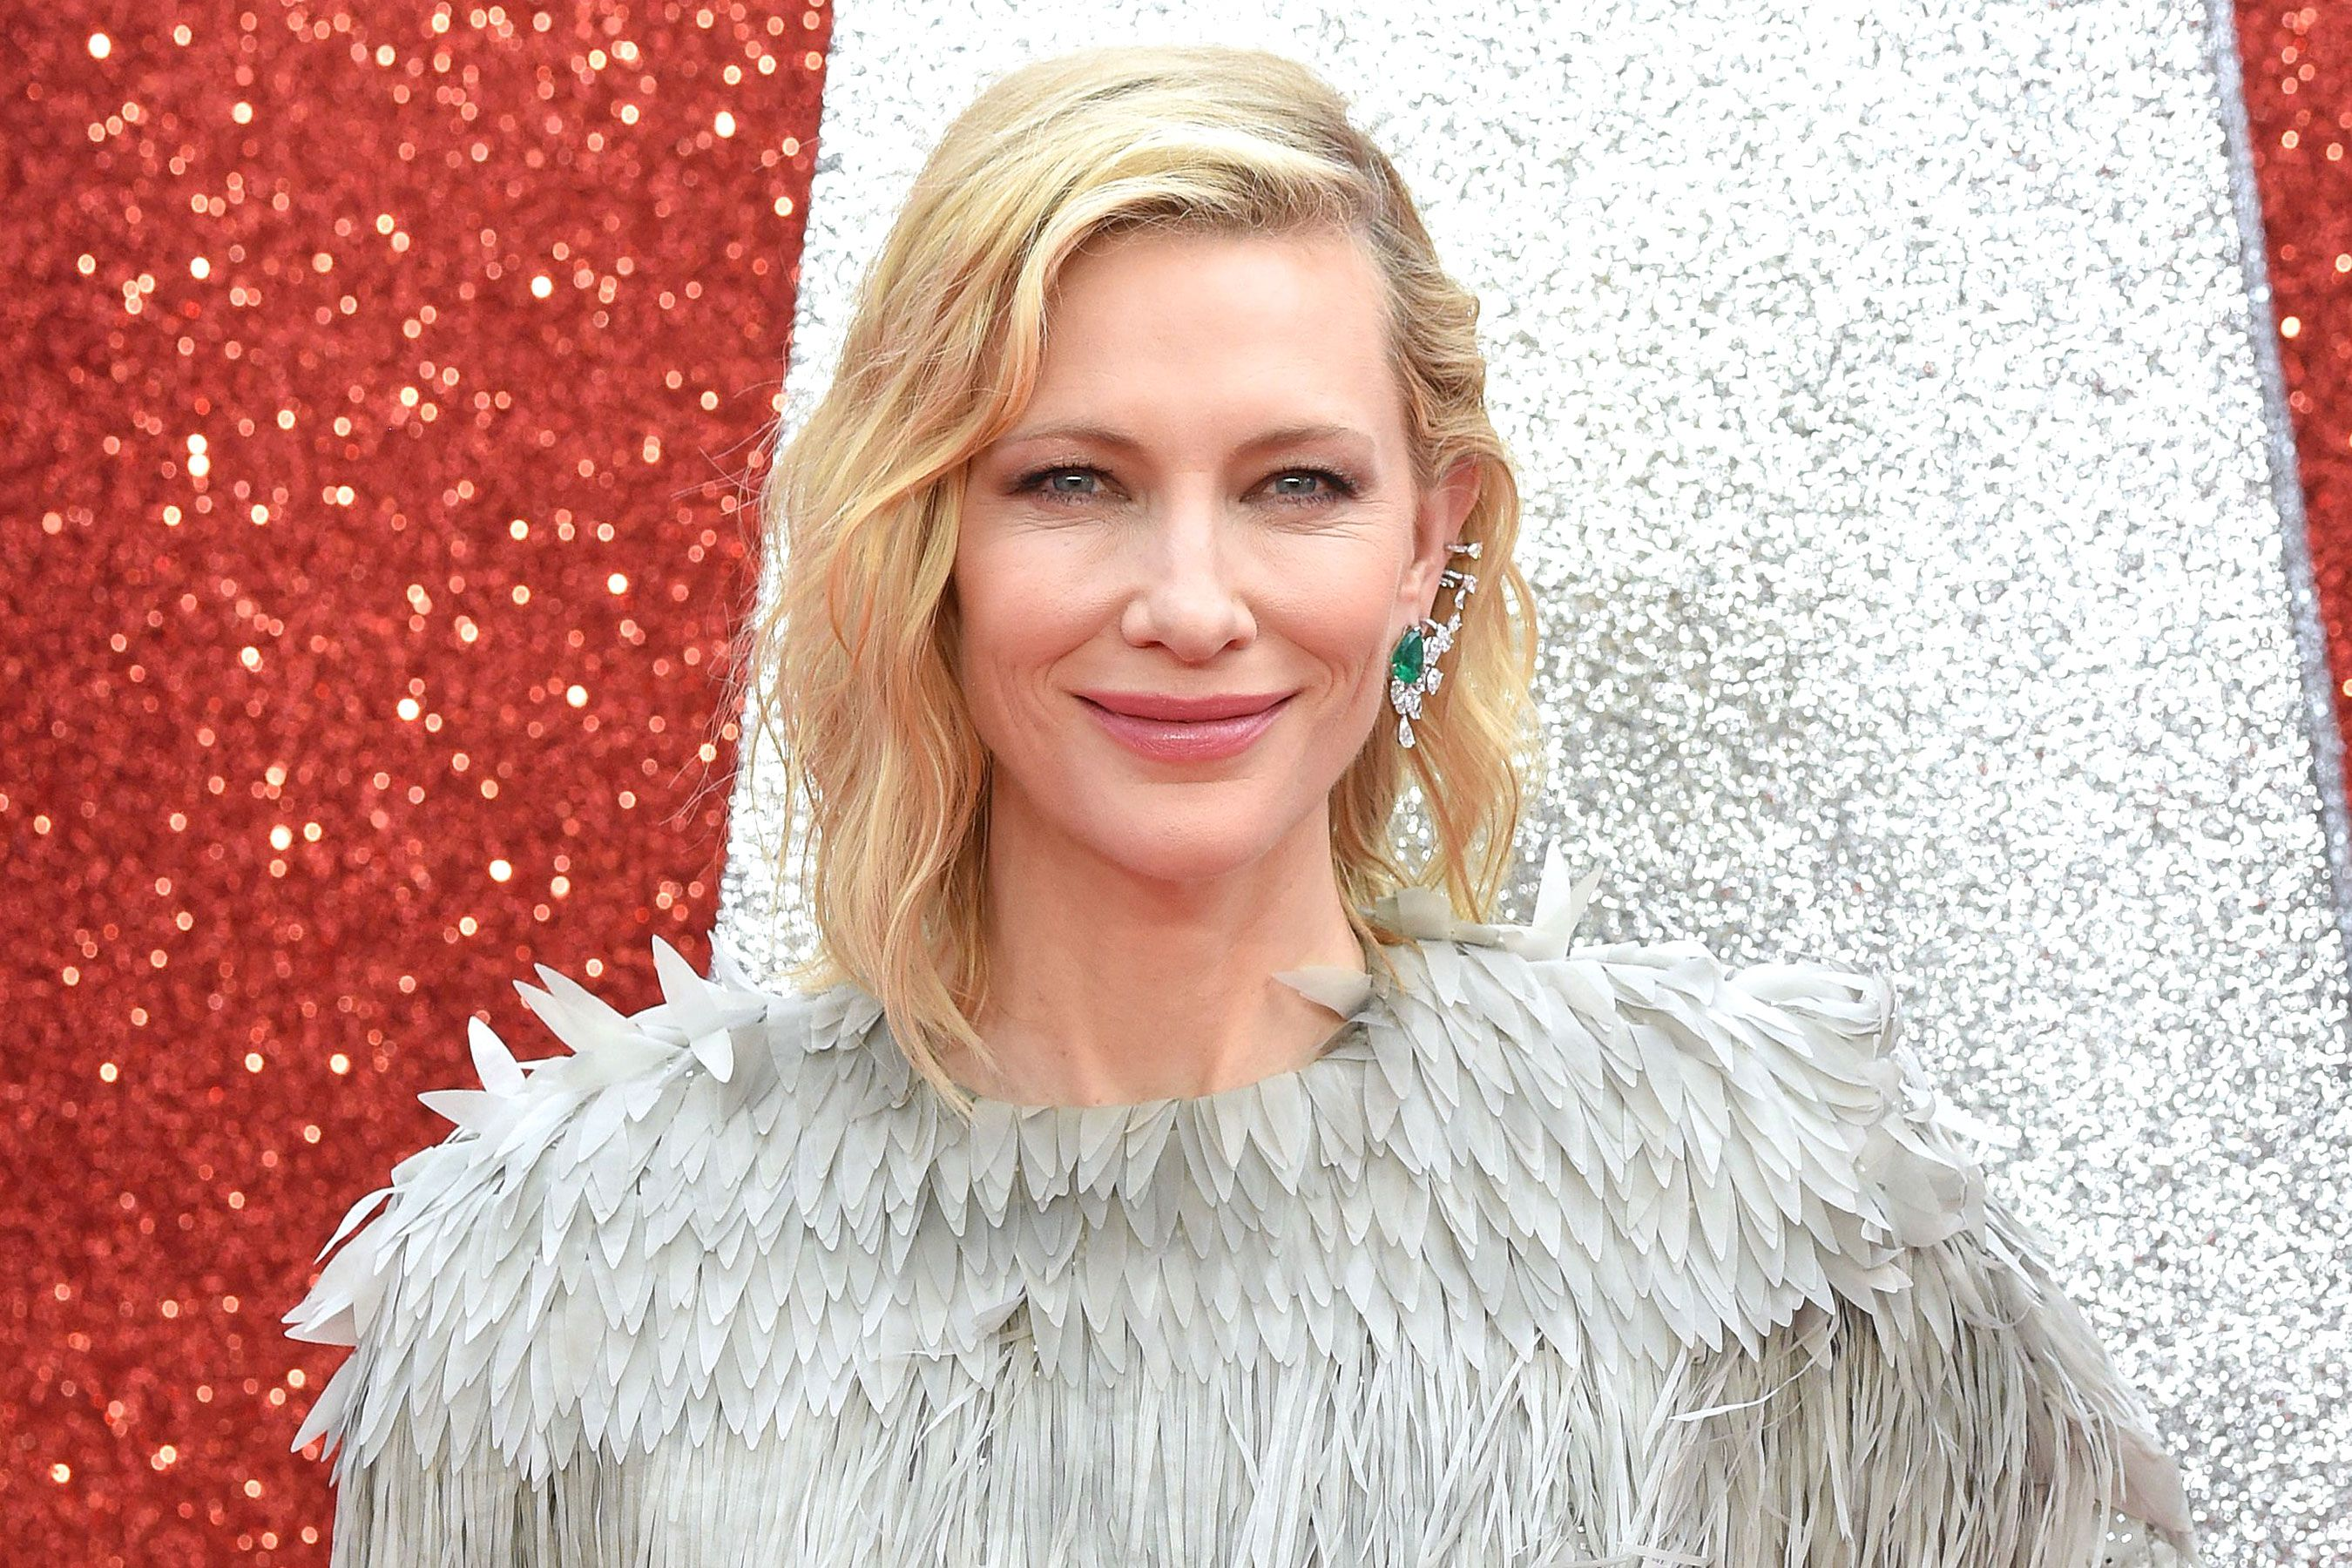 Cate Blanchett to star in FX's limited series Mrs. America